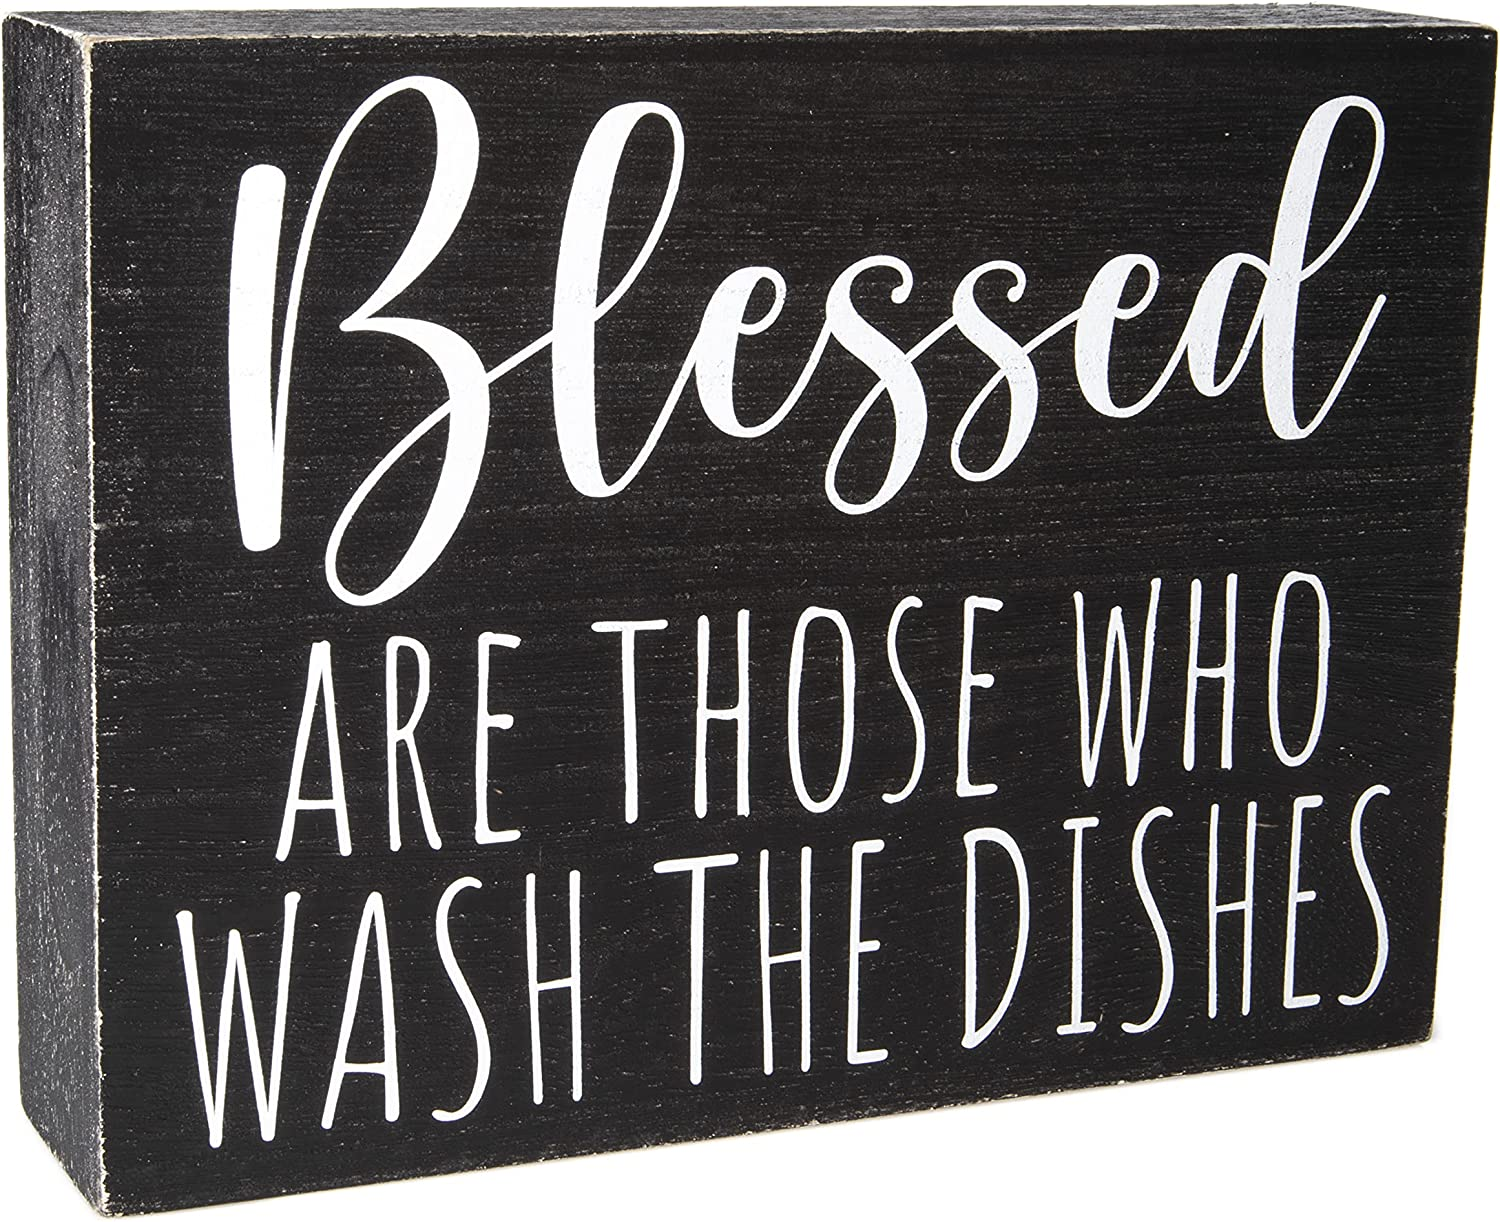 Modern Farmhouse Kitchen Decor for Counter - Black and White Kitchen Wall Decorations - Funny Kitchen Signs for Shelf Accents Above Cabinets - Rustic Decorative Tray Art